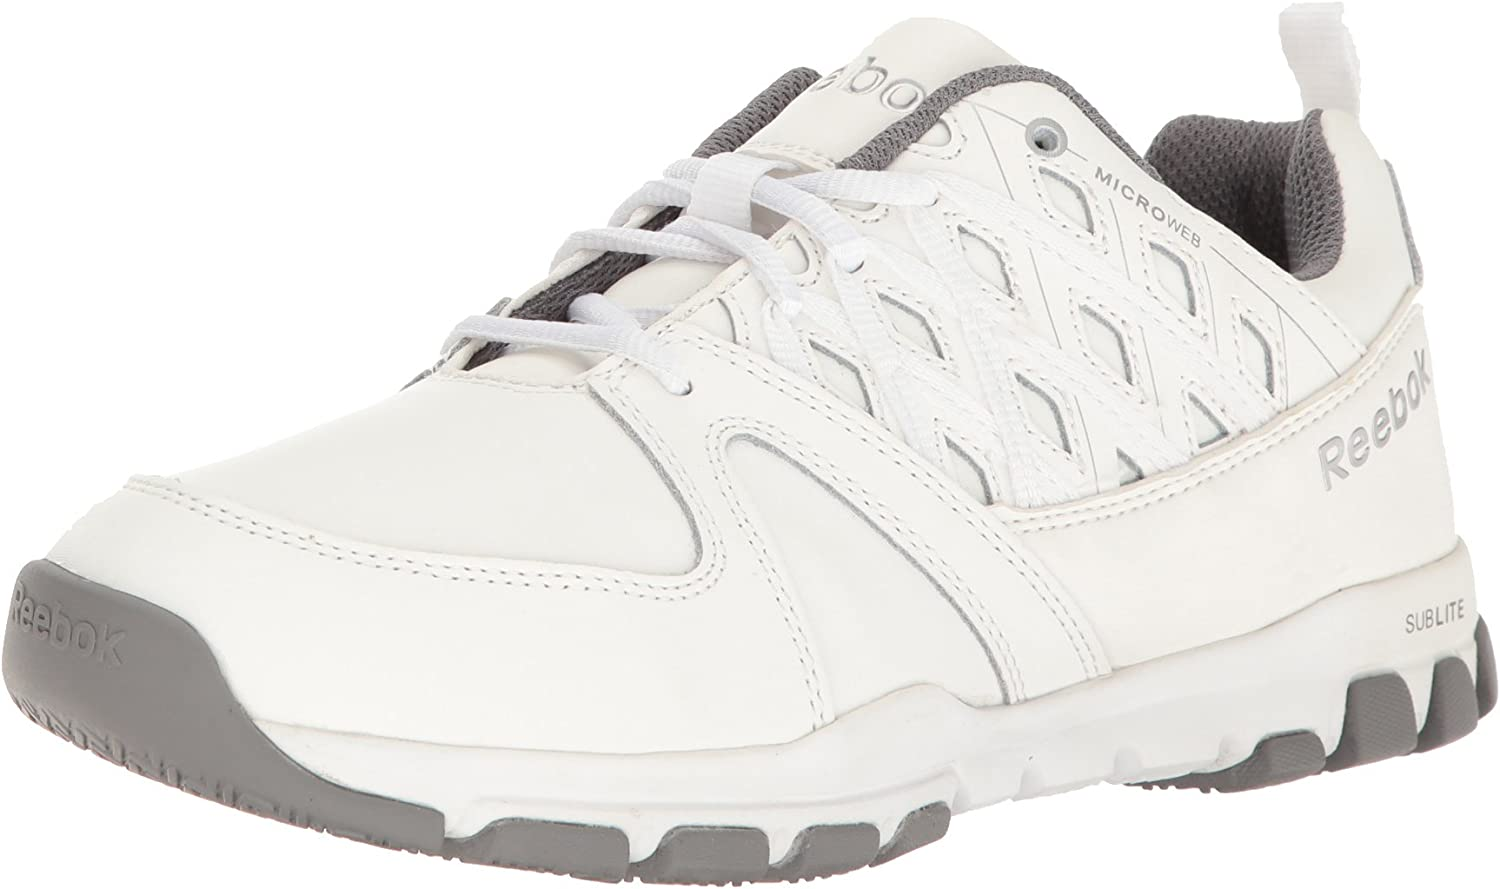 Reebok Work Men& 39;s Sublite Work RB4442 Industrial and Construction shoes